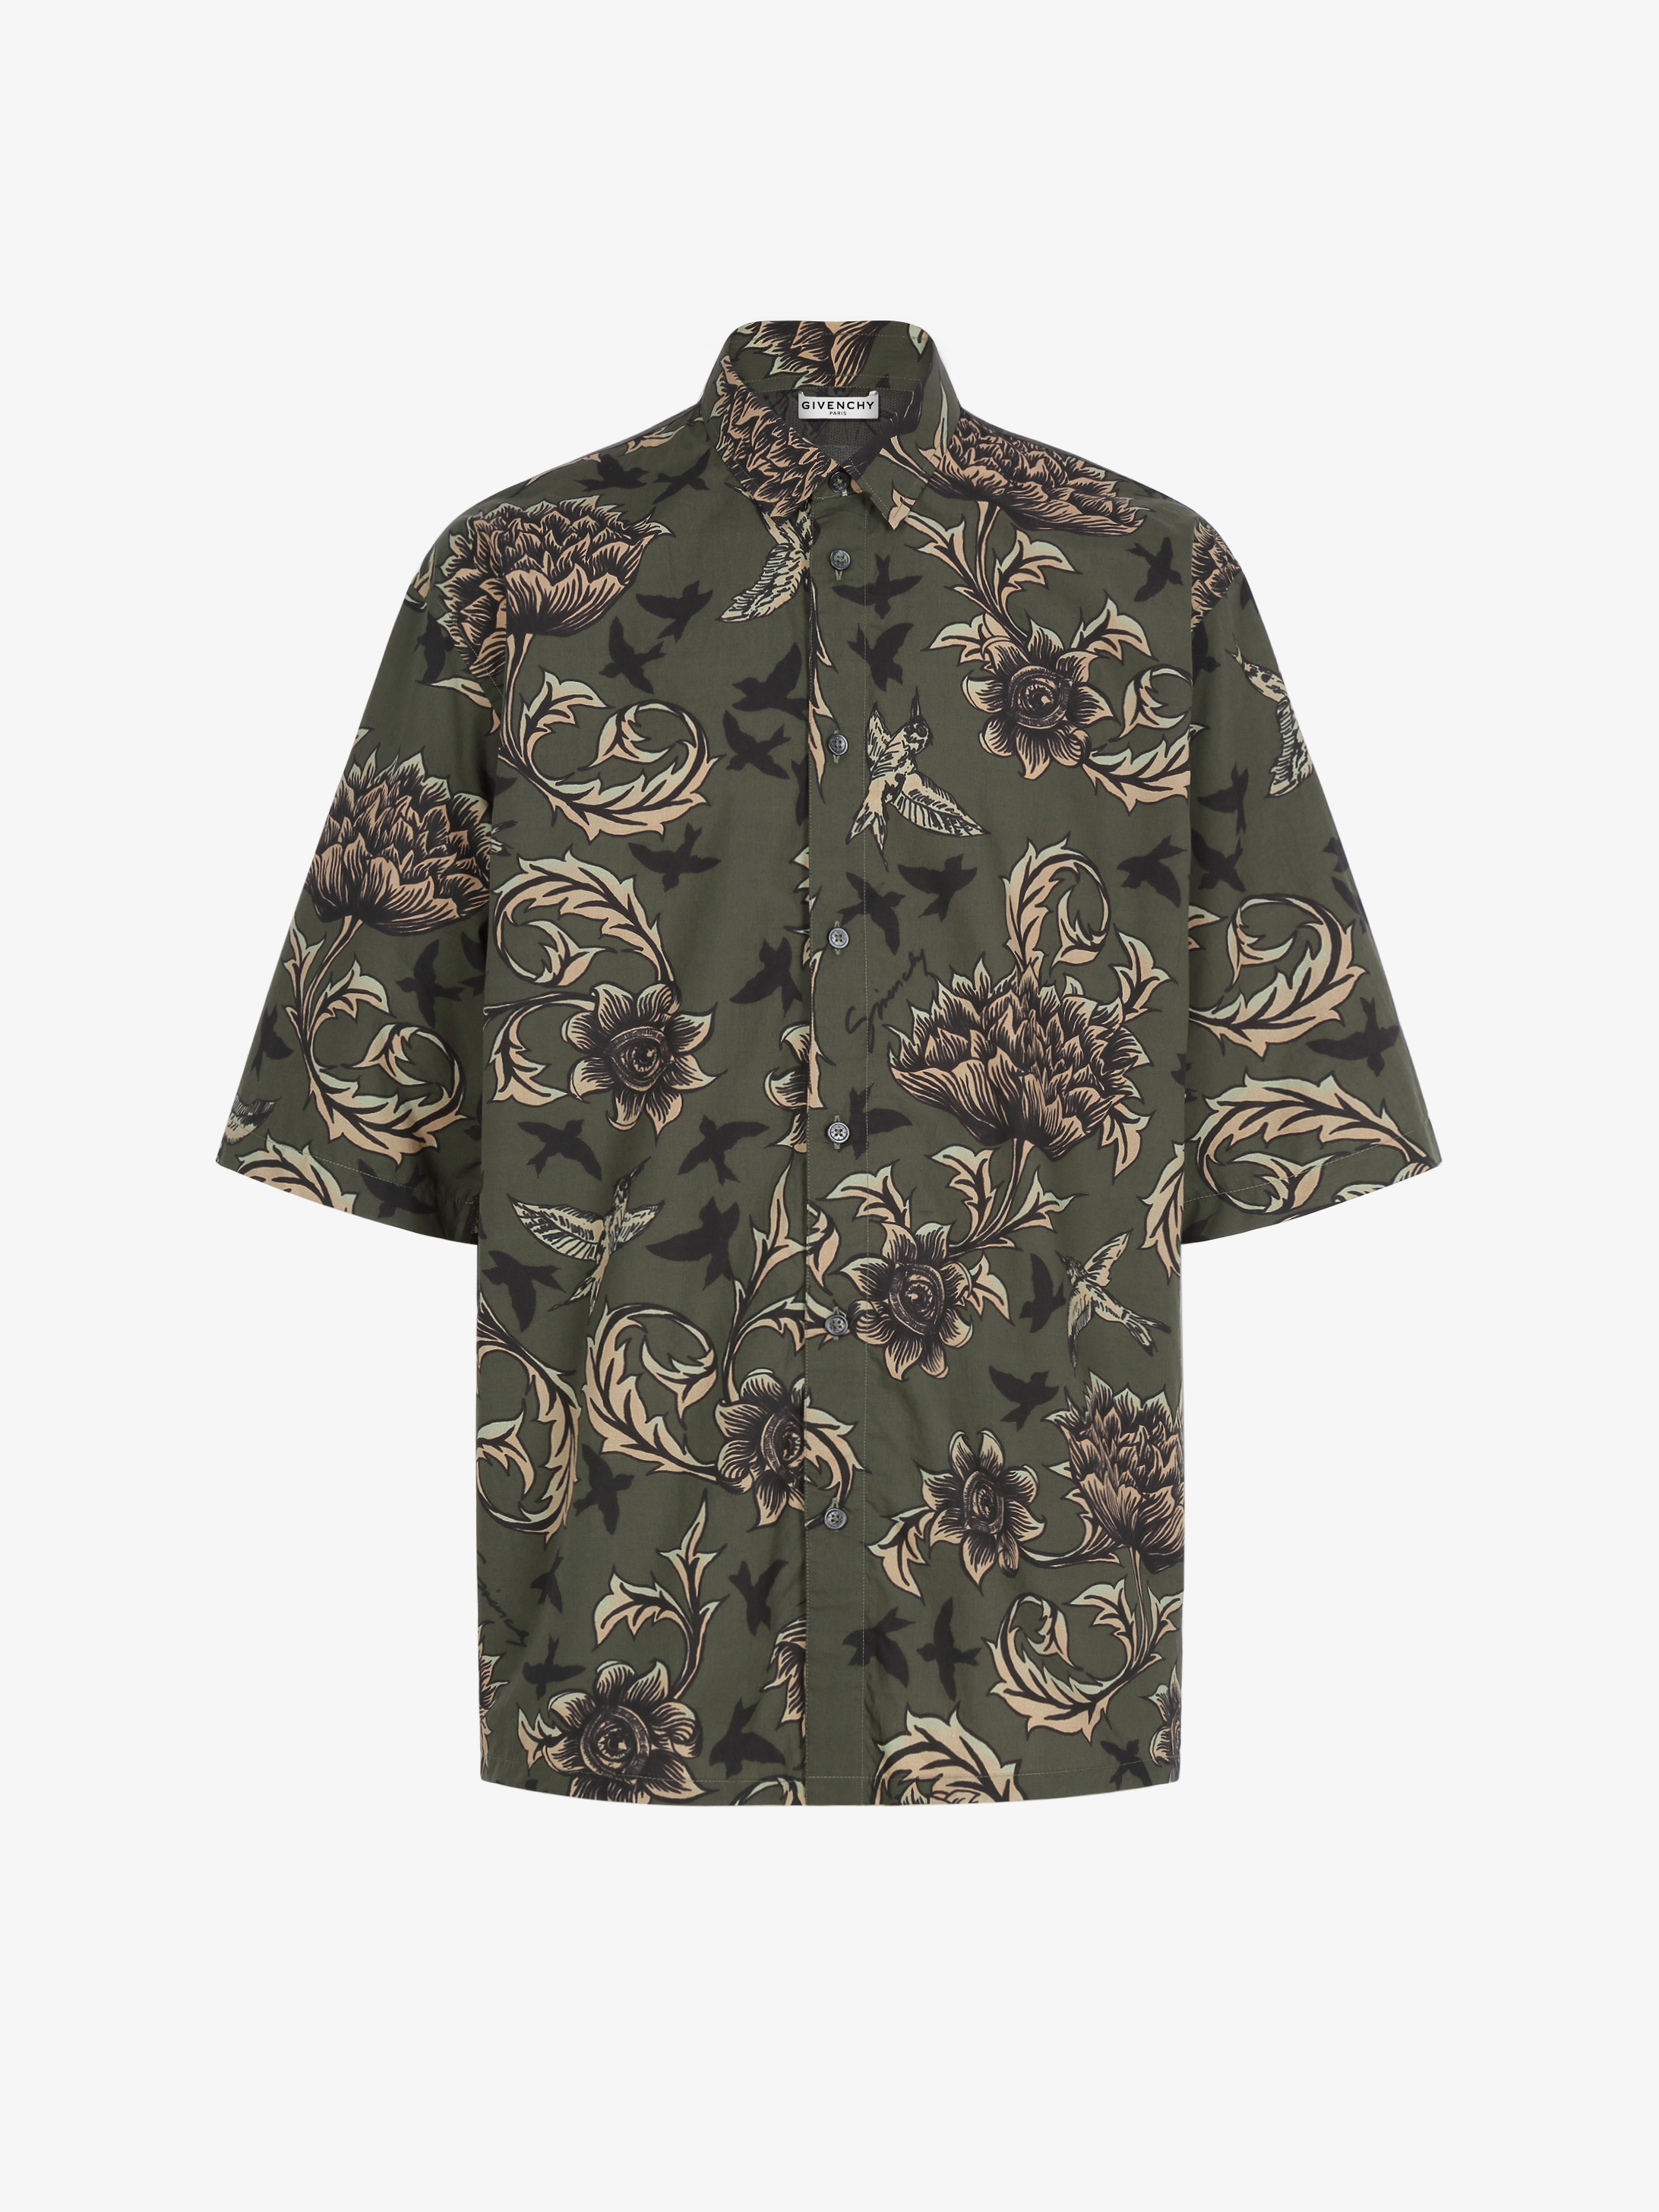 Floral and astral printed shirt in coton